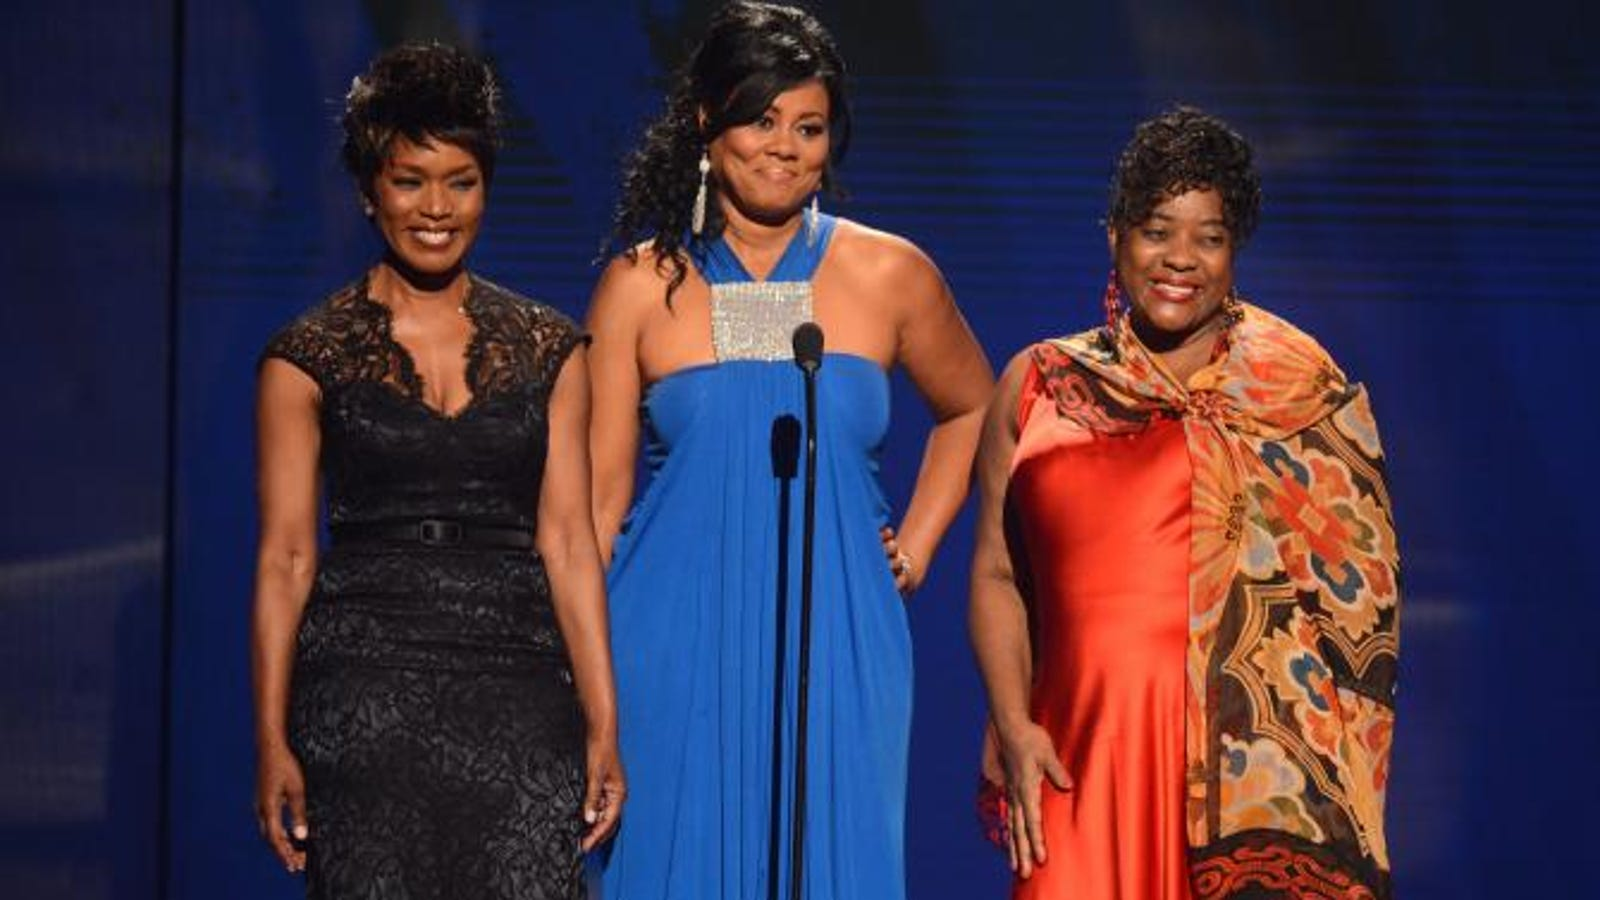 Cast members of waiting to exhale